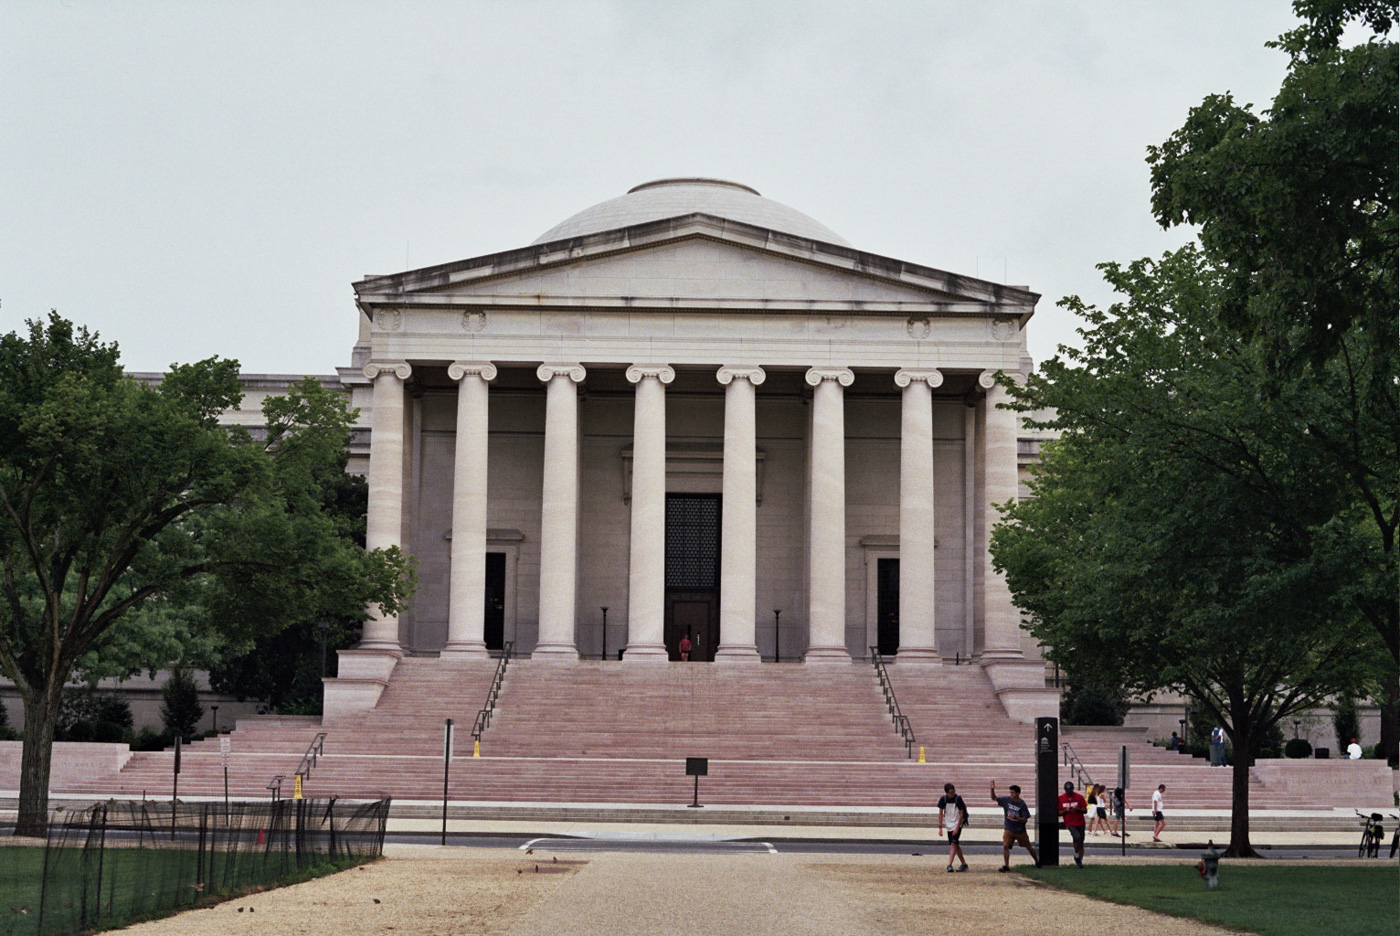 National Gallery of Art, West Building